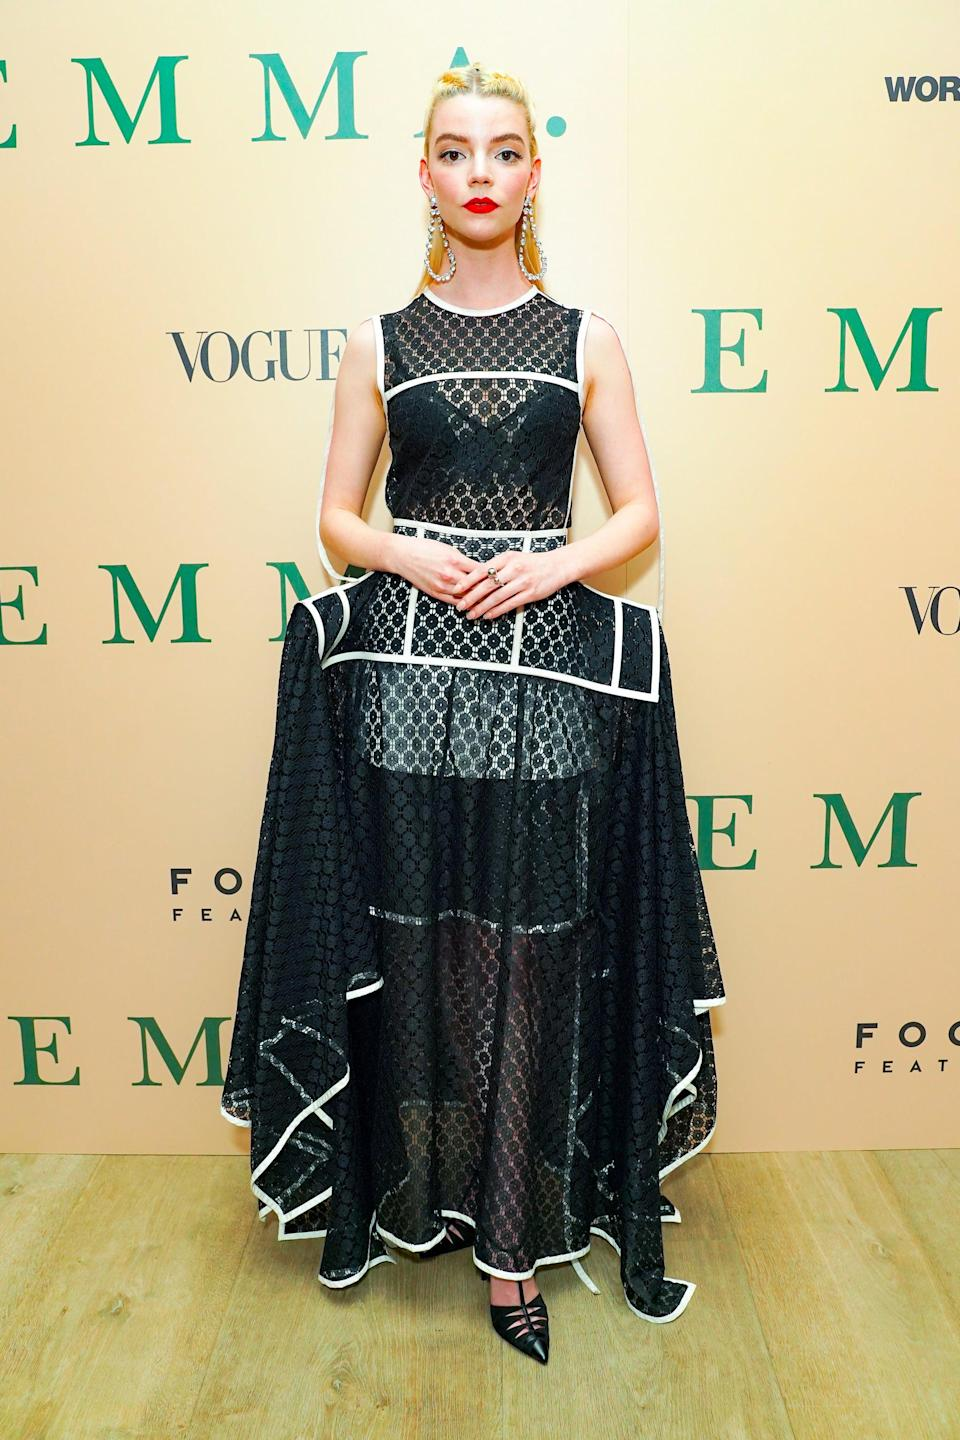 <p>Anya impressed in this see-through lace Loewe dress with an avant-garde silhouette.</p>